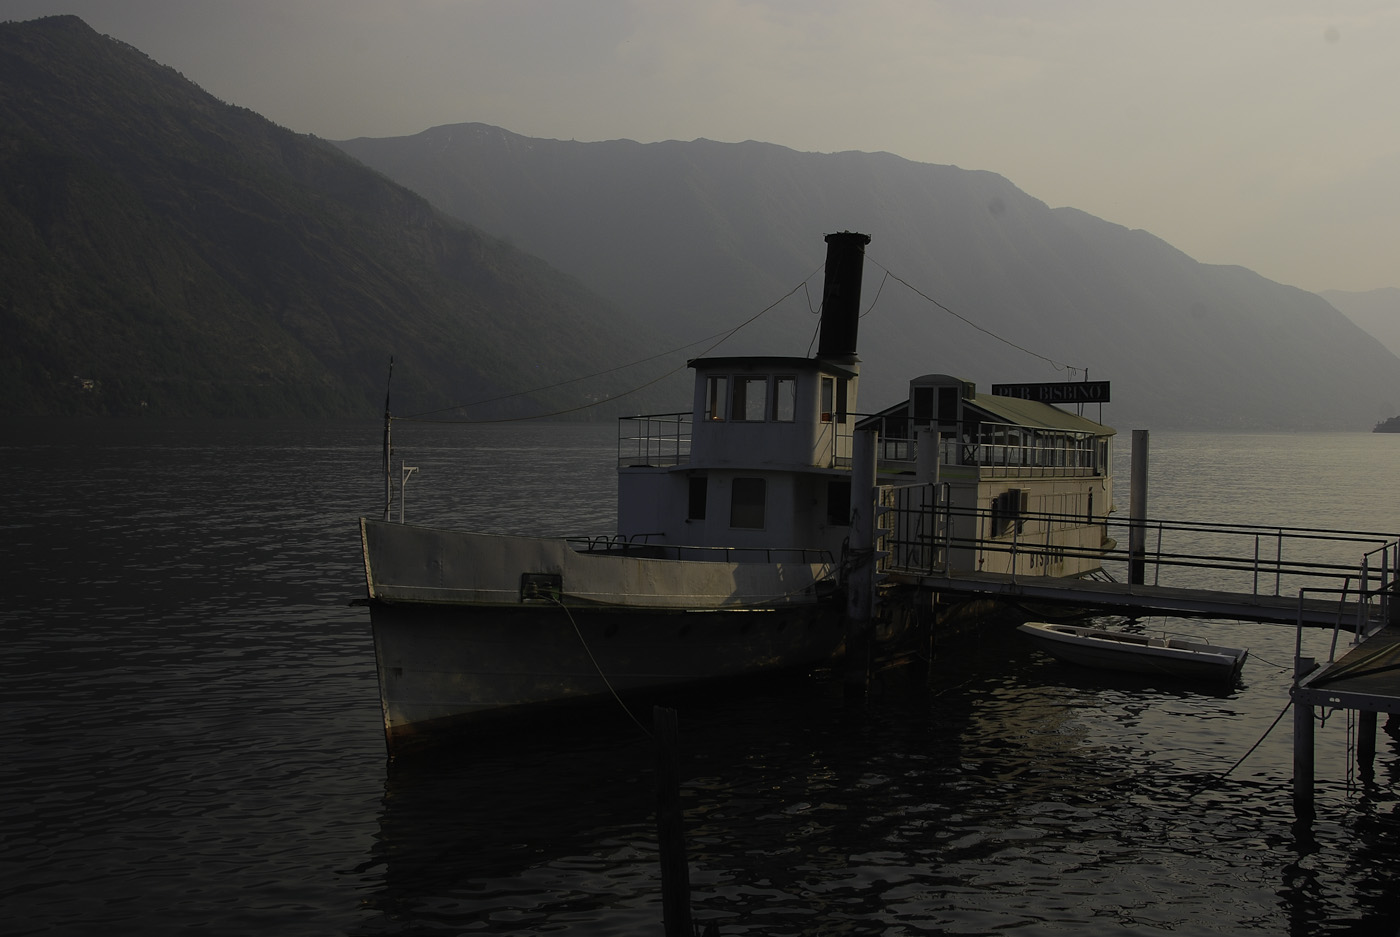 A photograph of a steam boat on lake major in Italy